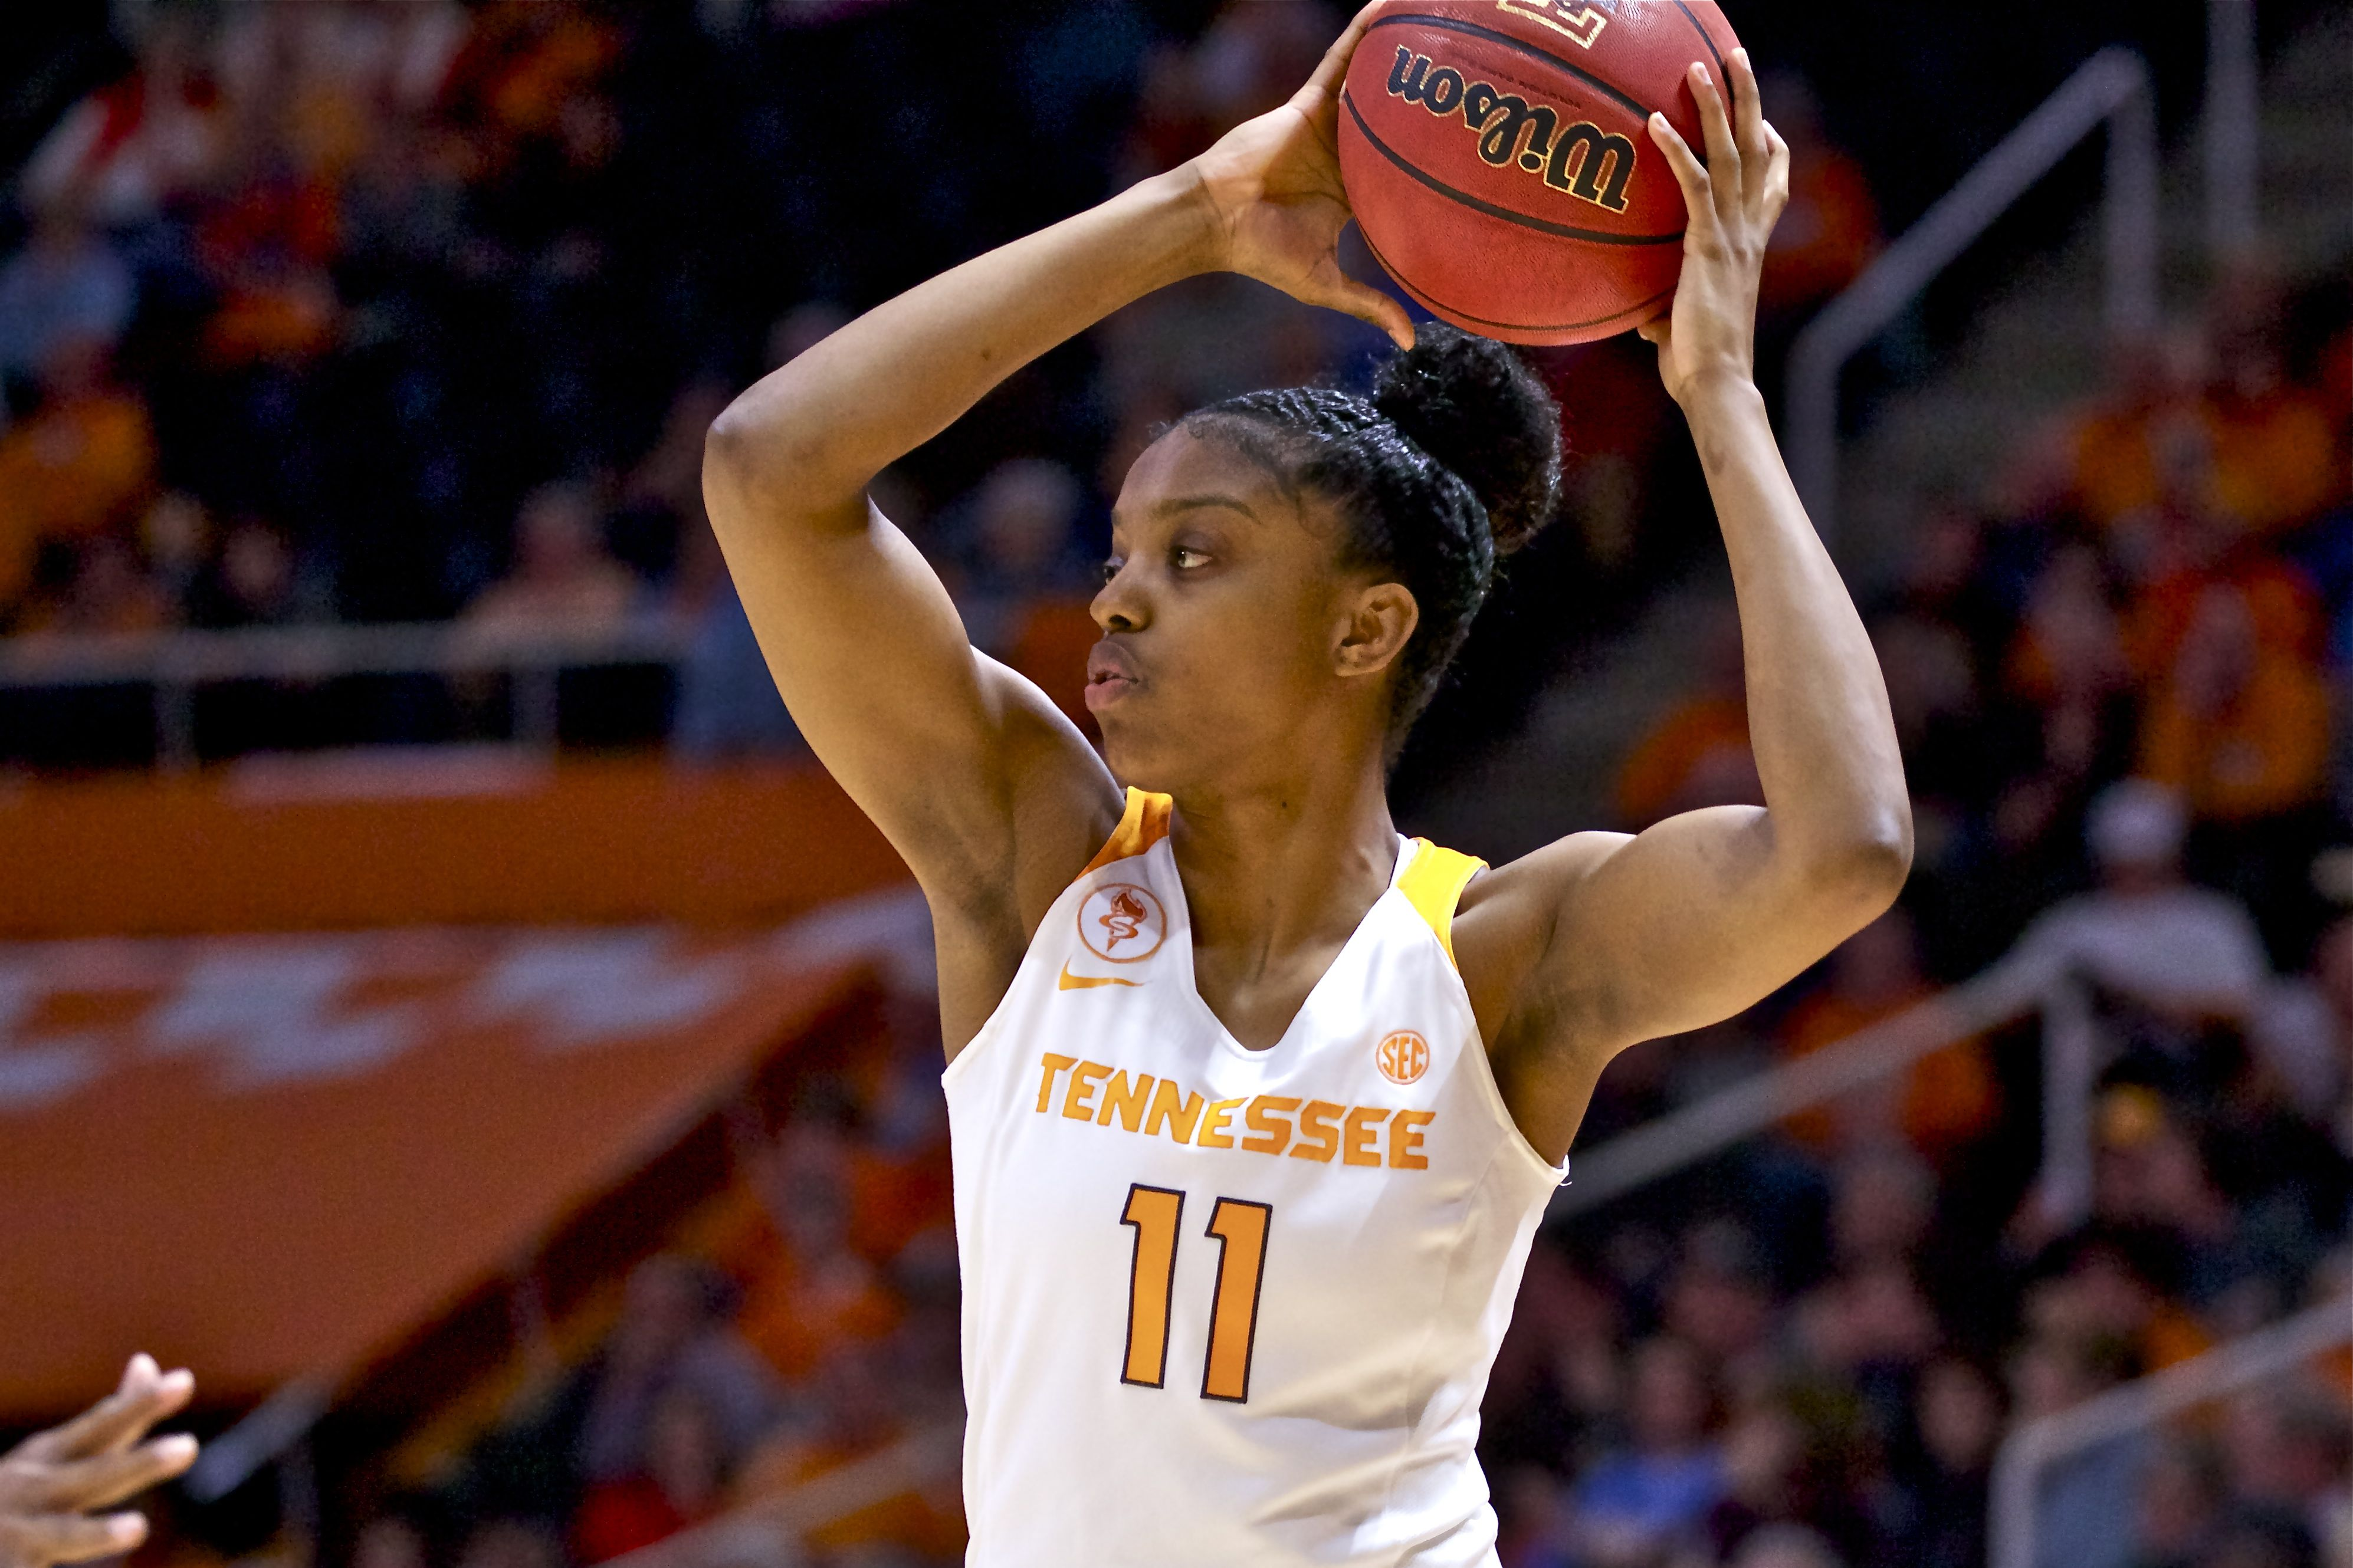 Diamond DeShields' father criticizes Warlick on Twitter, apologizes